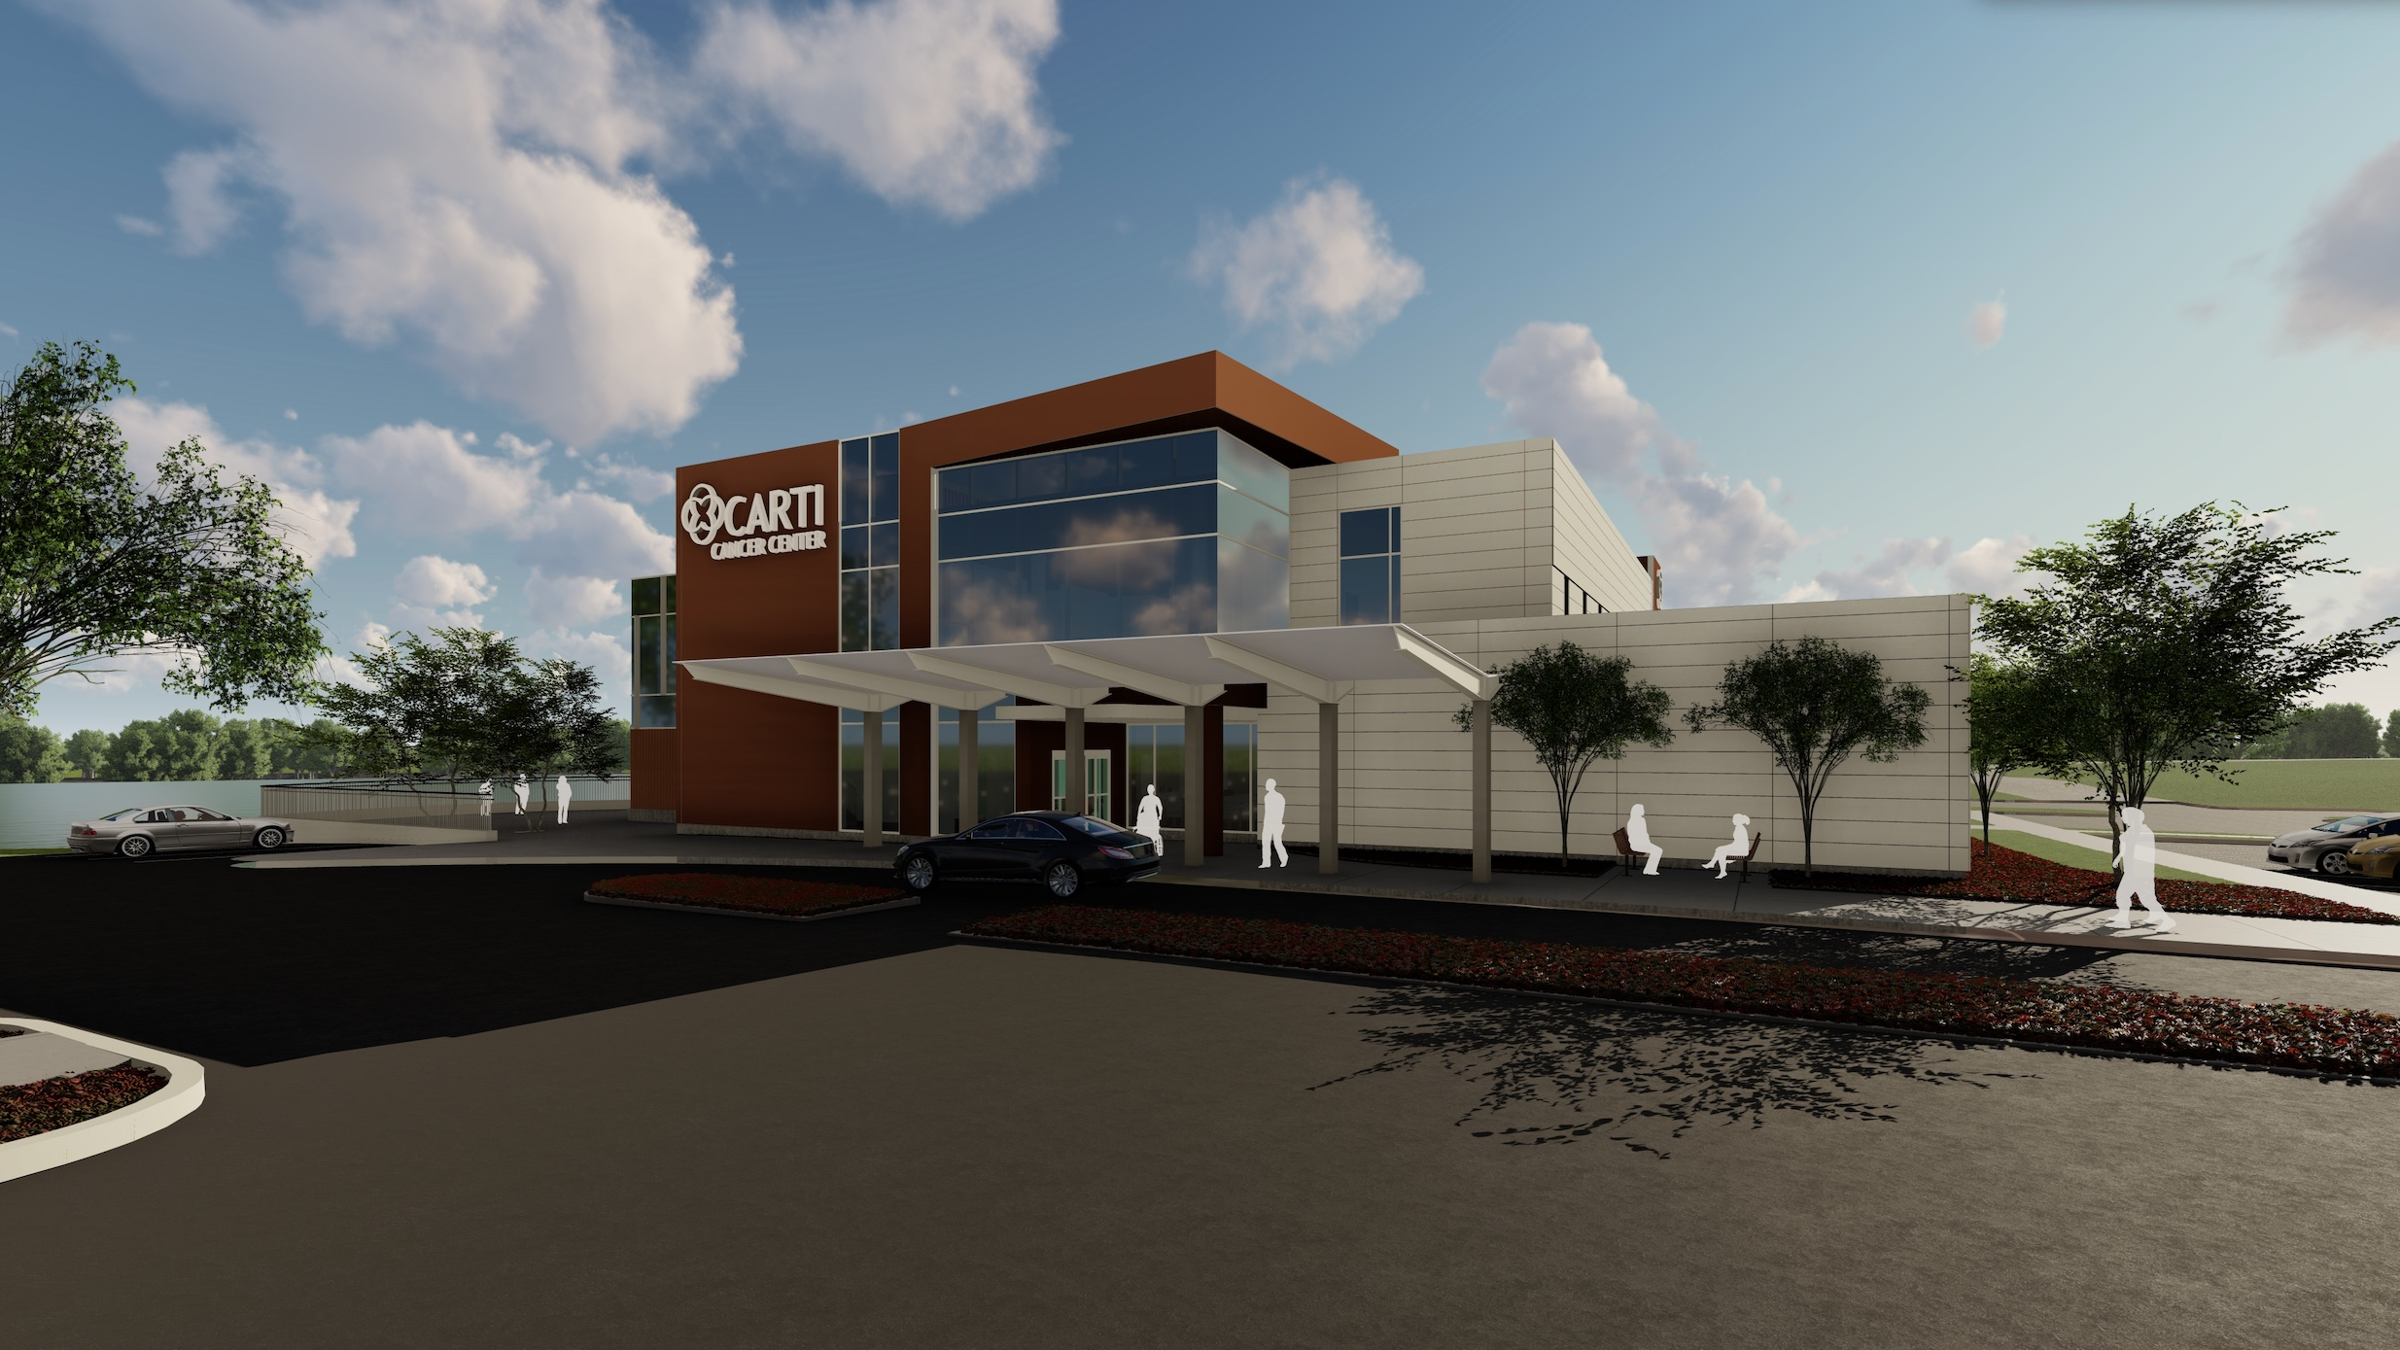 CARTI Announces Plan to Build CARTI Cancer Center in Pine Bluff